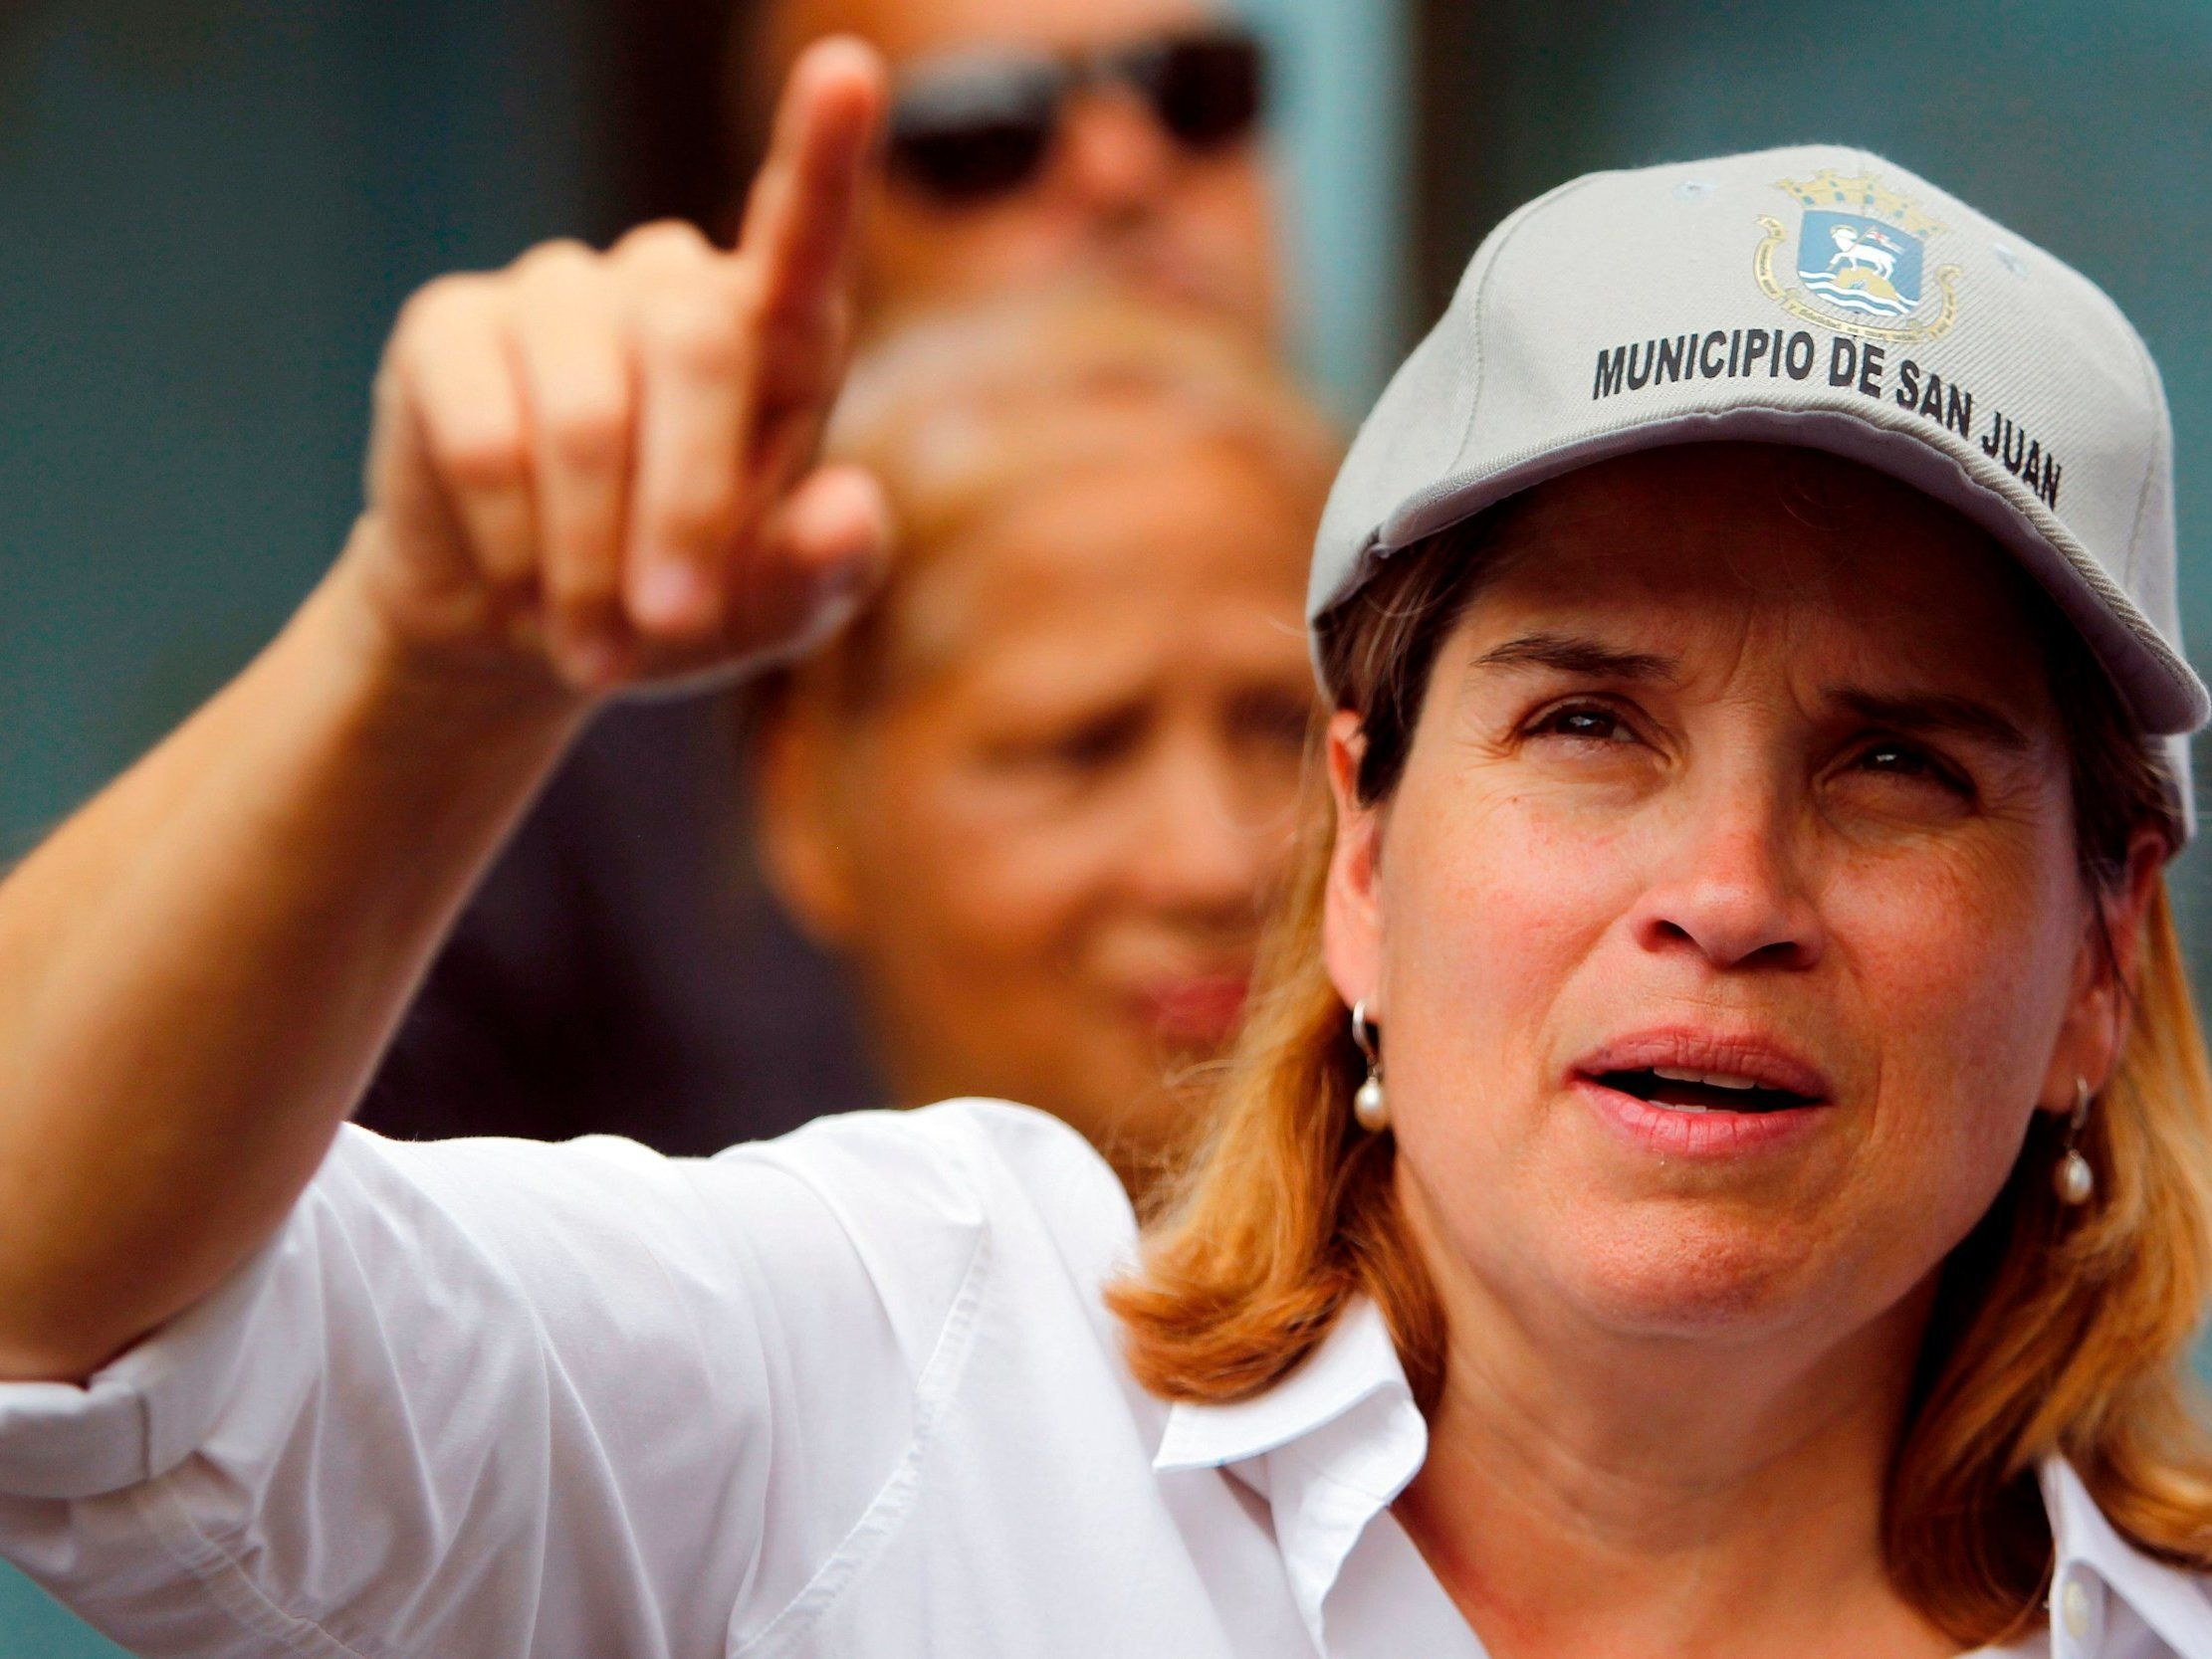 San Juan Mayor Carmen Yulin Cruz has been critical of President Donald Trump's response to disasters in Puerto Rico